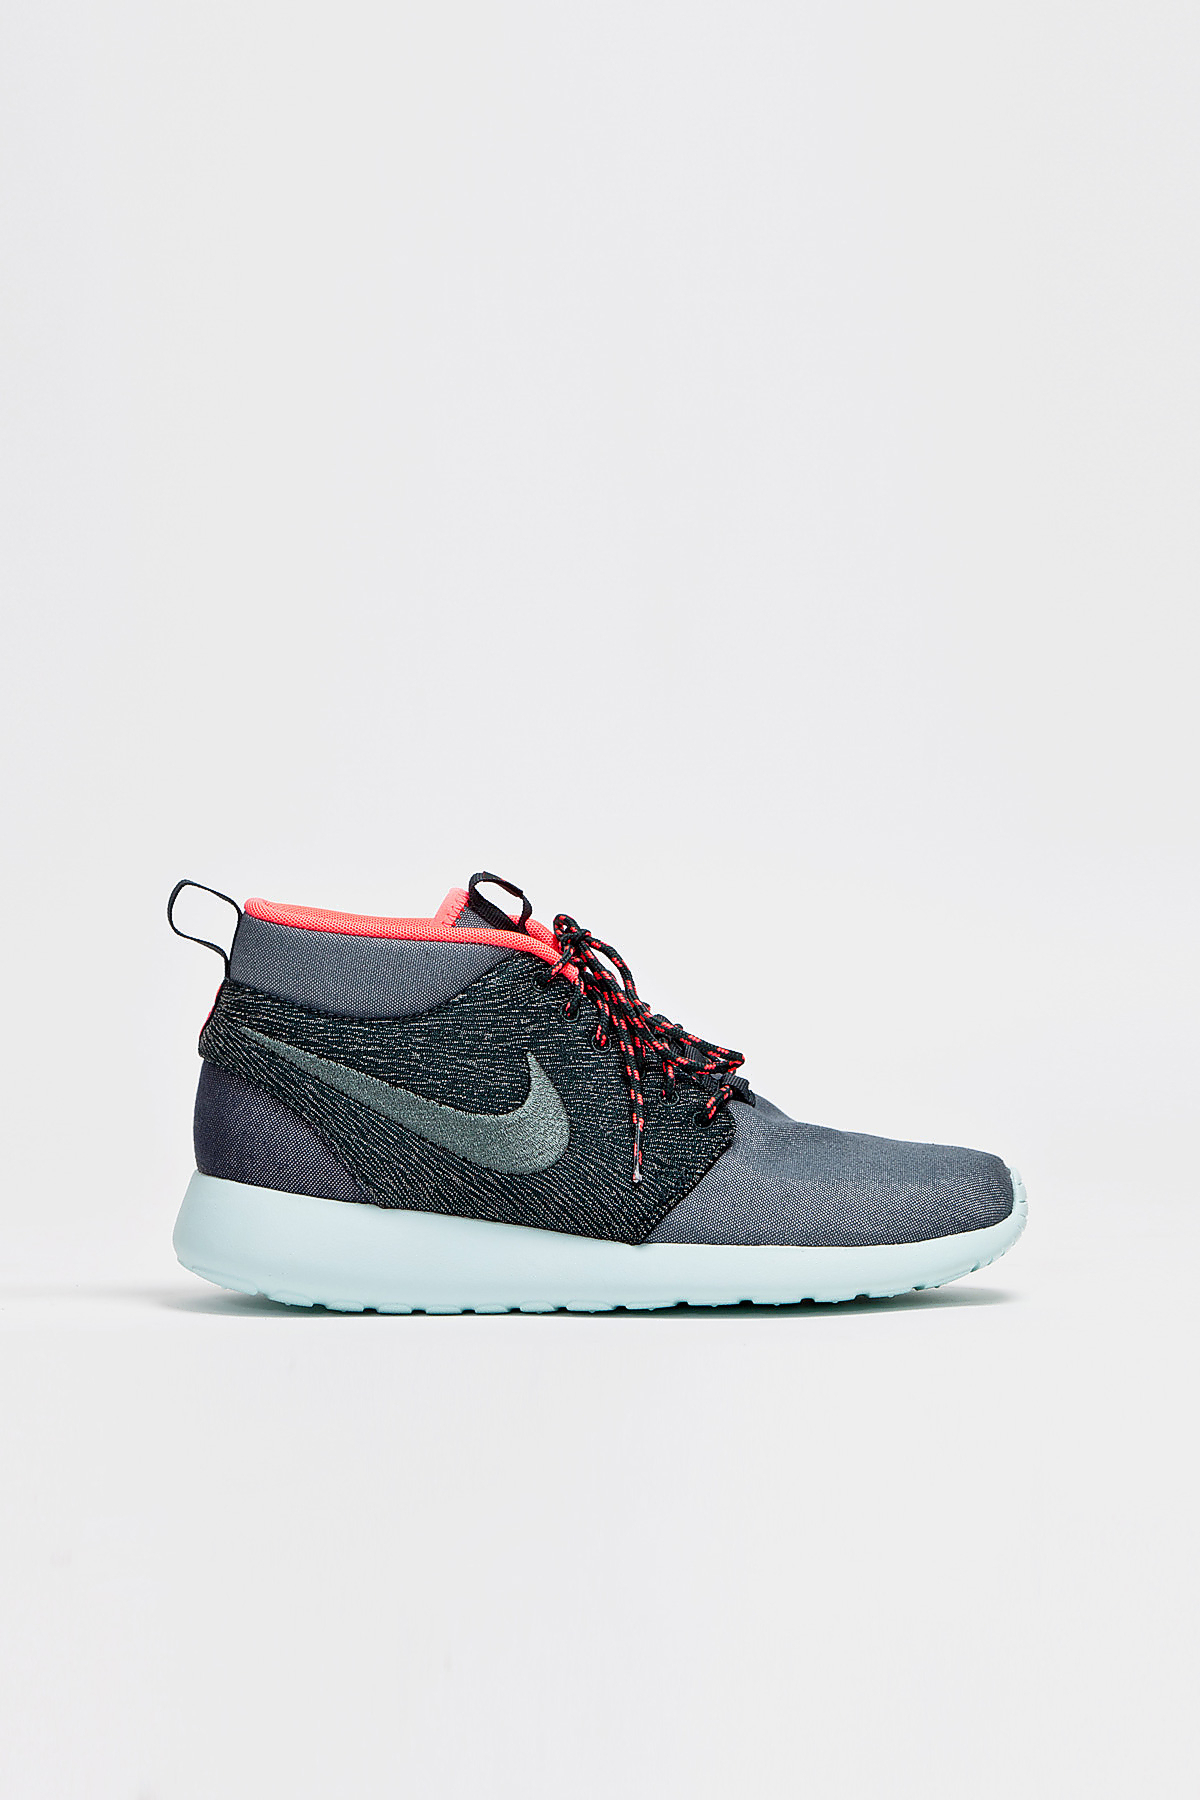 nike roshe run shop